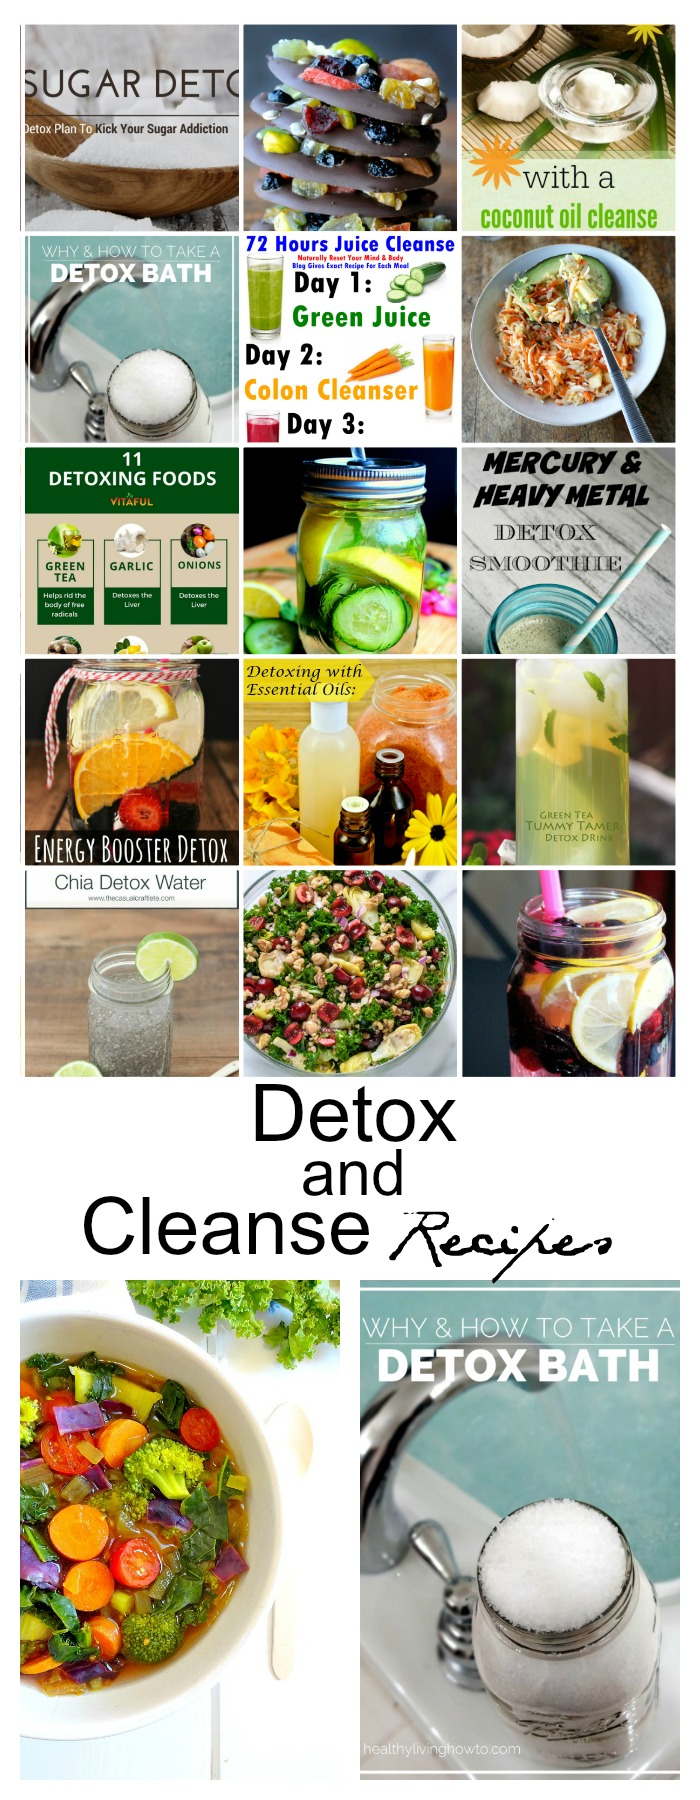 Detox-Cleanse-Recipes-Pin